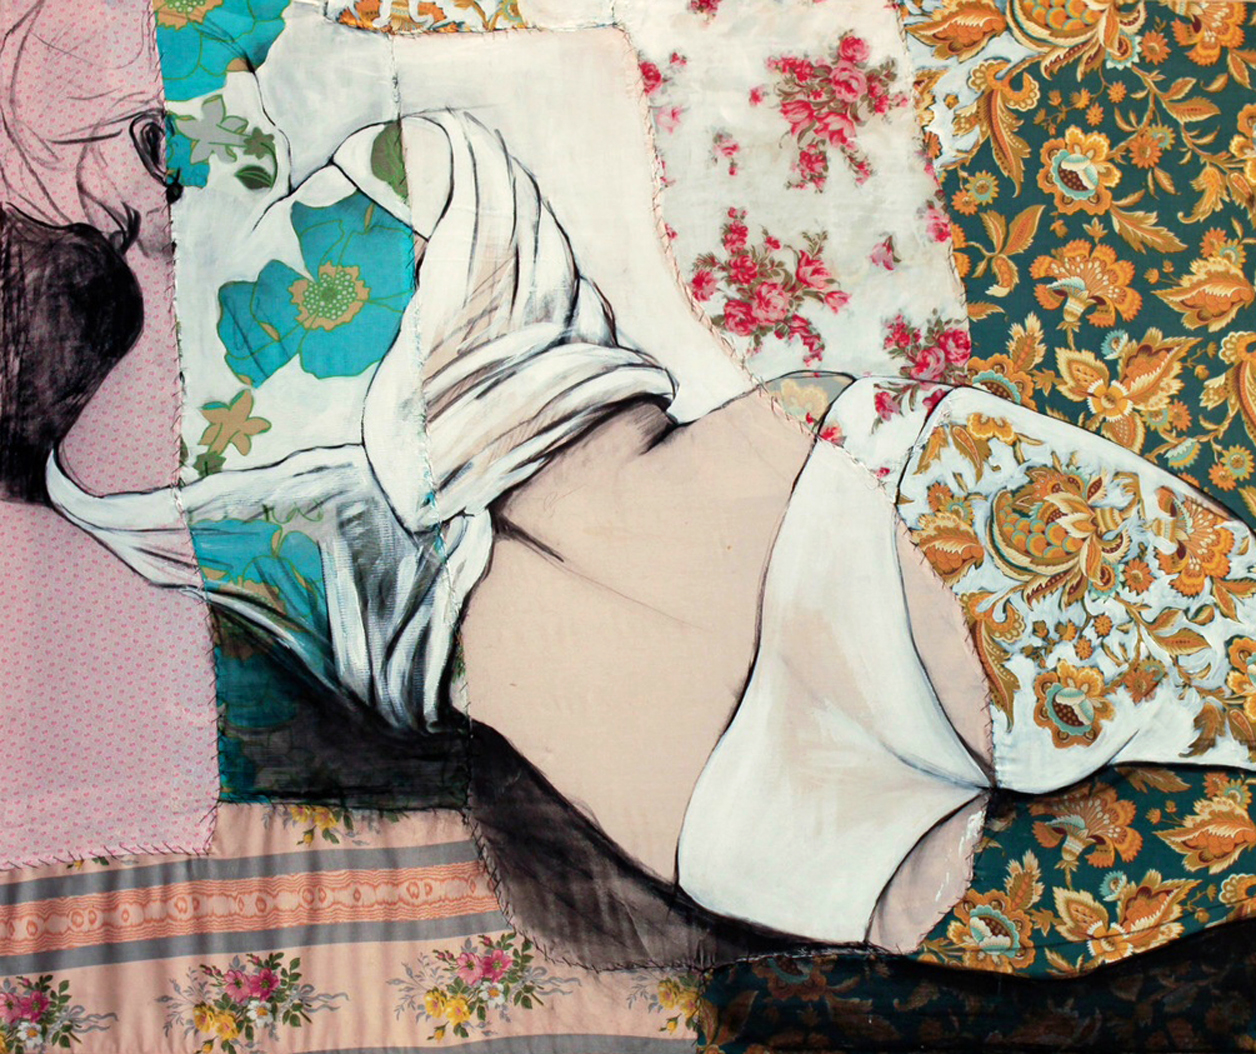 """Lea I  - Fabric, sheets, stitching, charcoal, mixed media on canvas - 39"""" x 47"""" /100 x 120 cm - SOLD"""